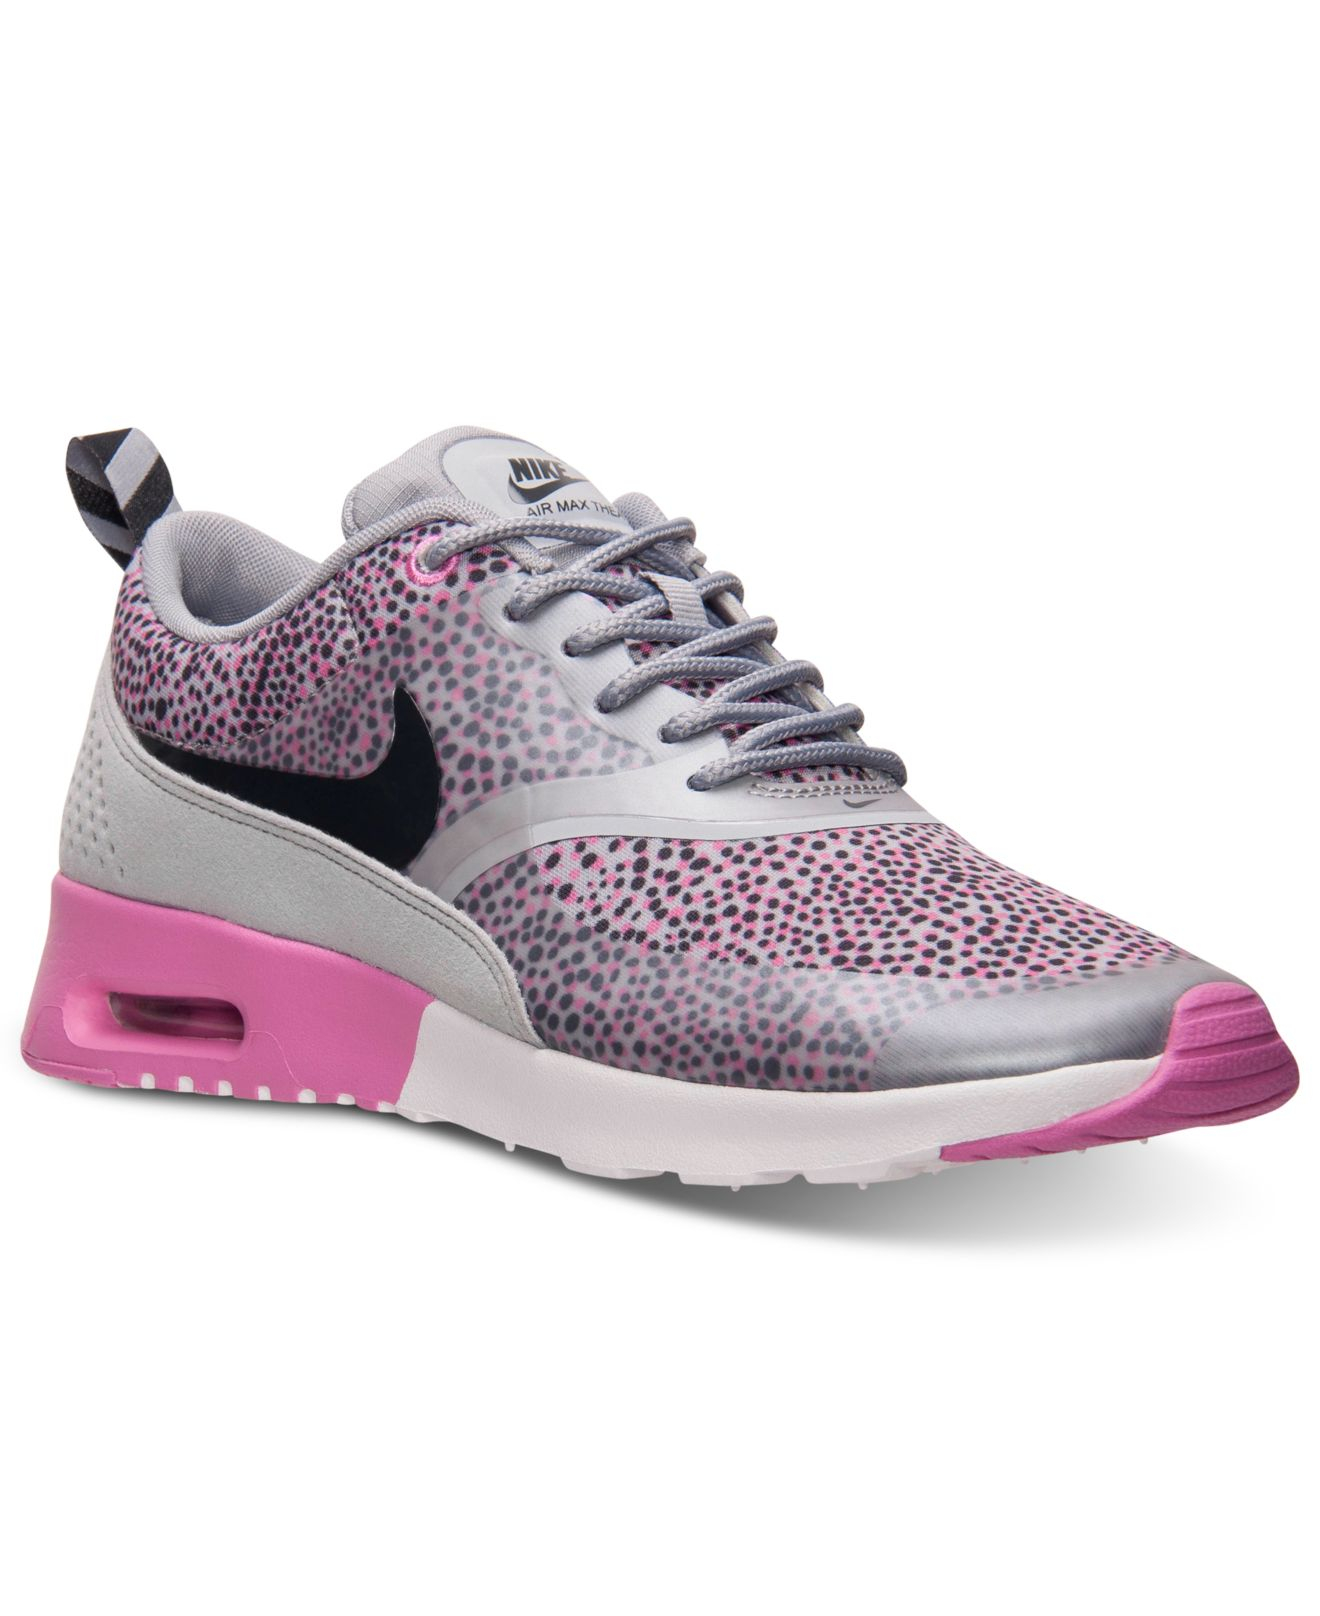 nike women 39 s air max thea print running sneakers from. Black Bedroom Furniture Sets. Home Design Ideas